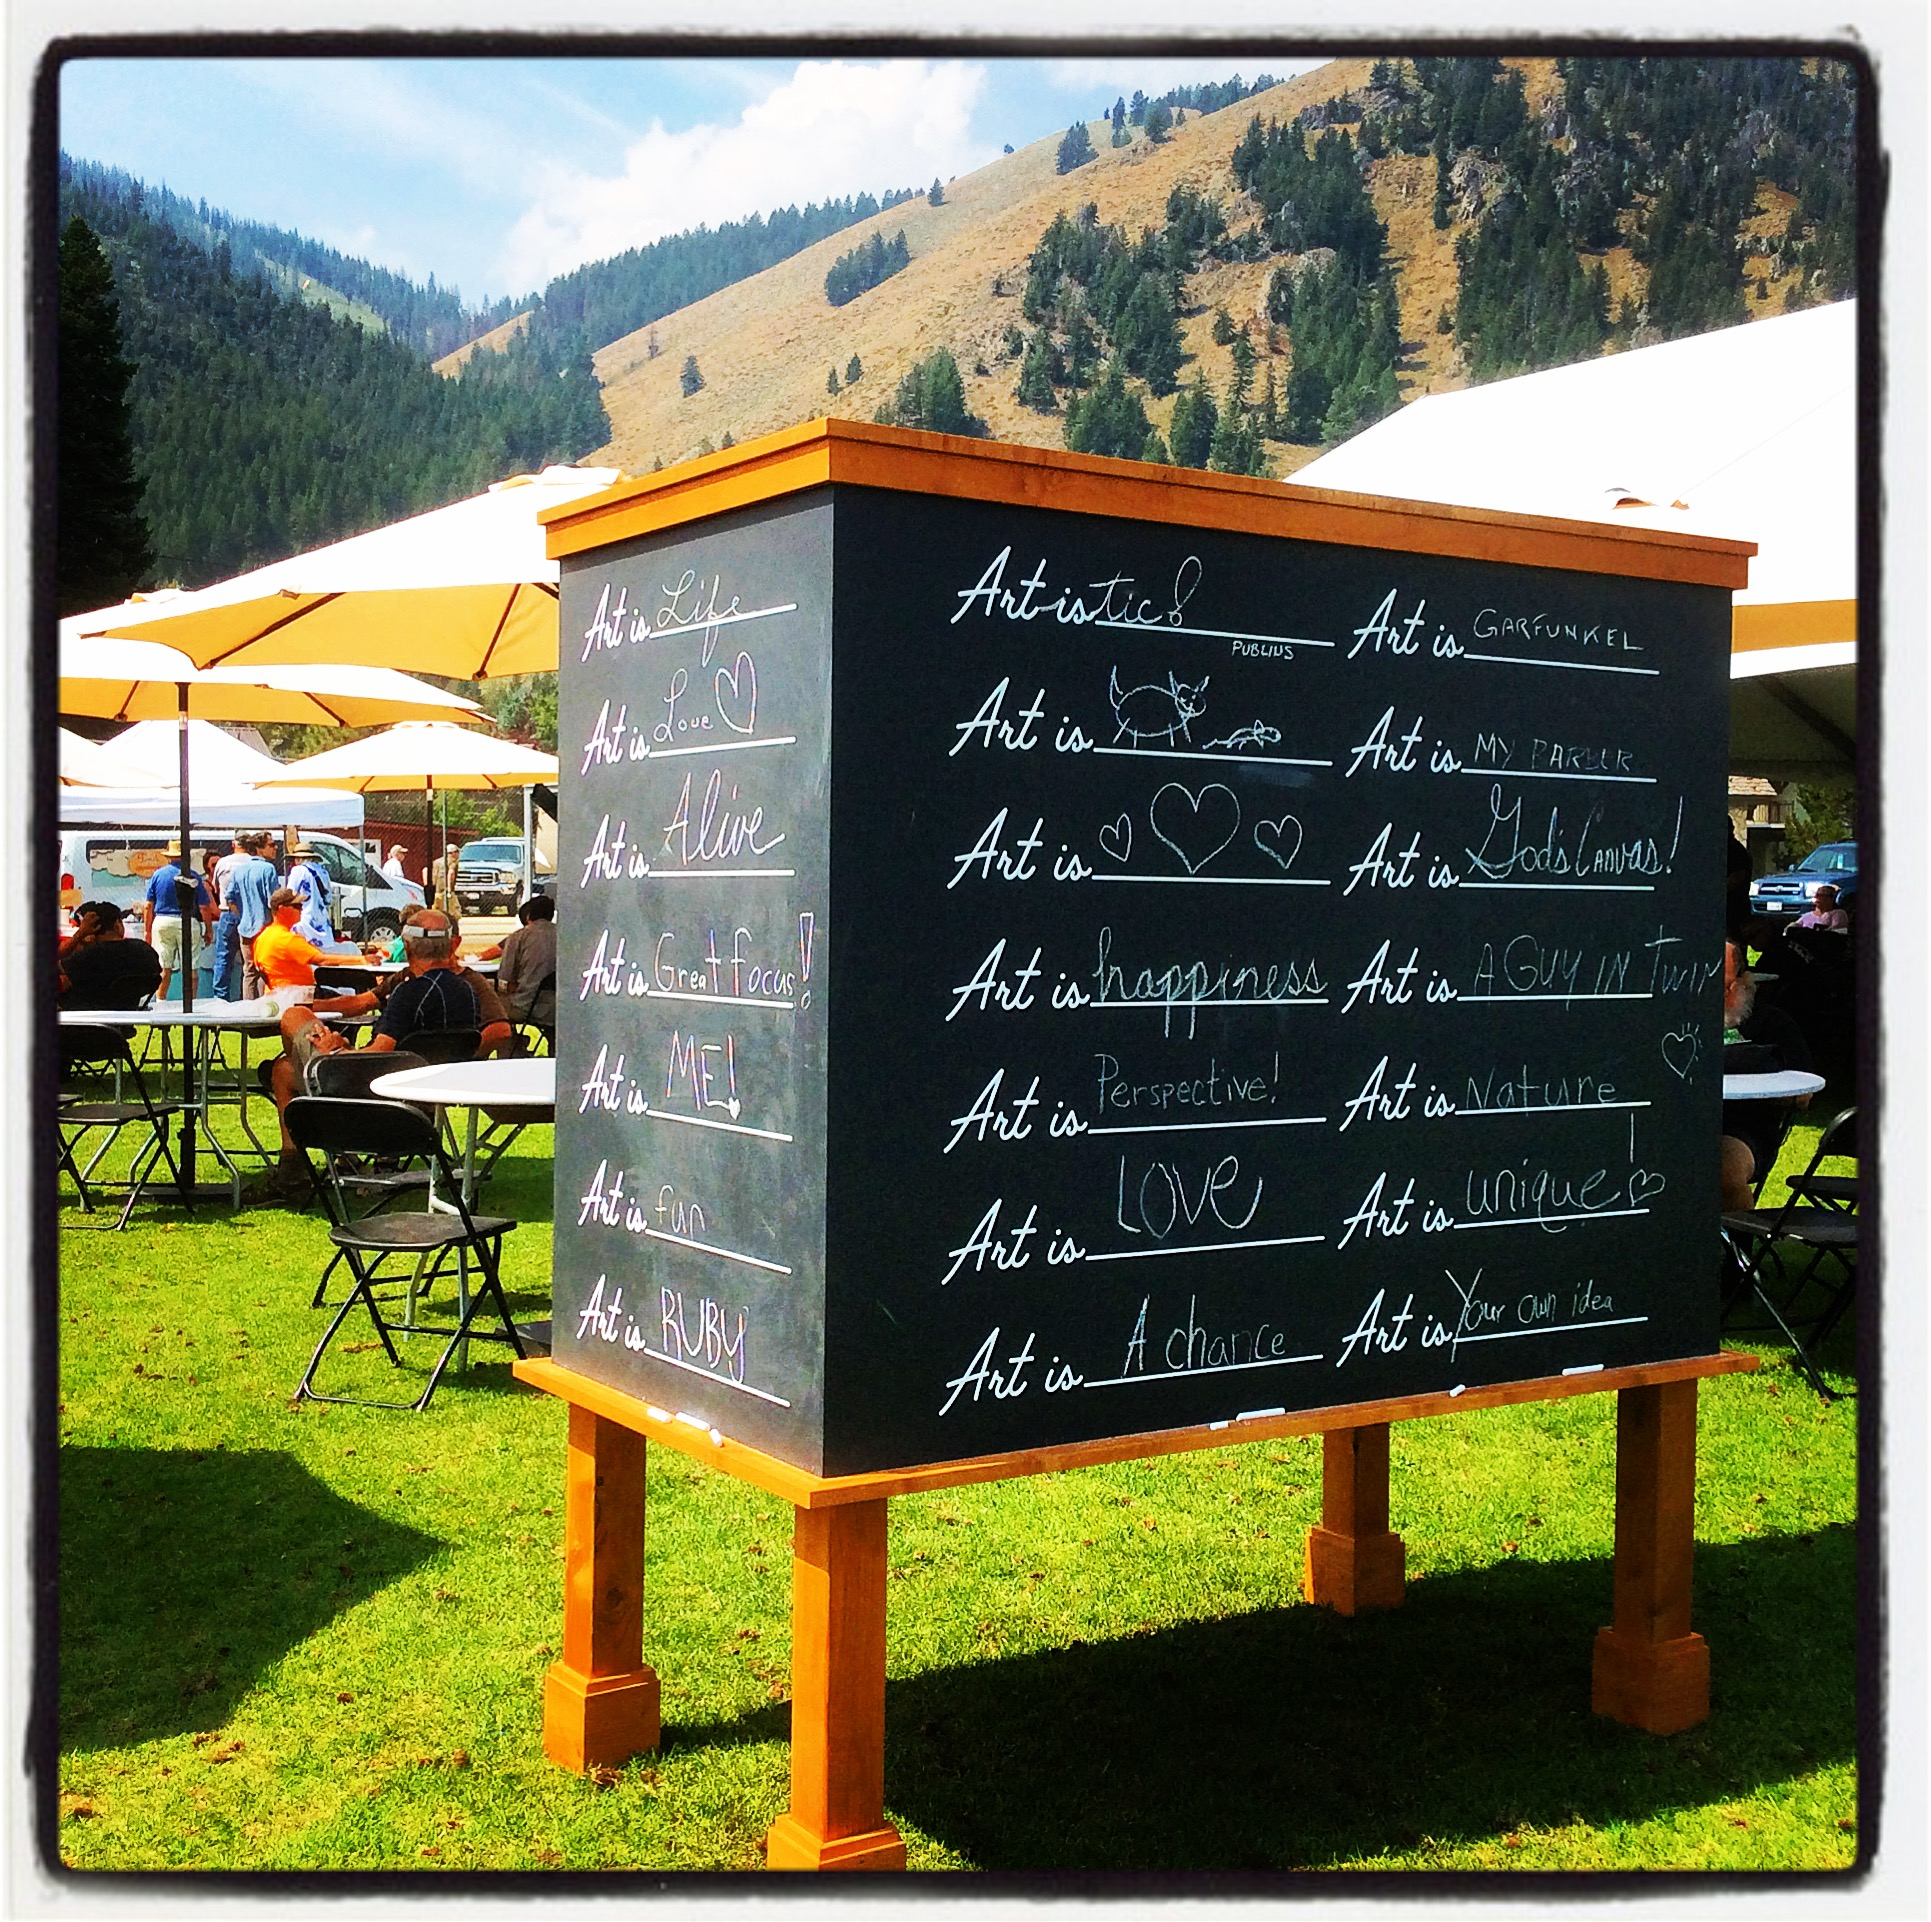 Sun Valley Idaho - Art is……………………………{fill in the blank}